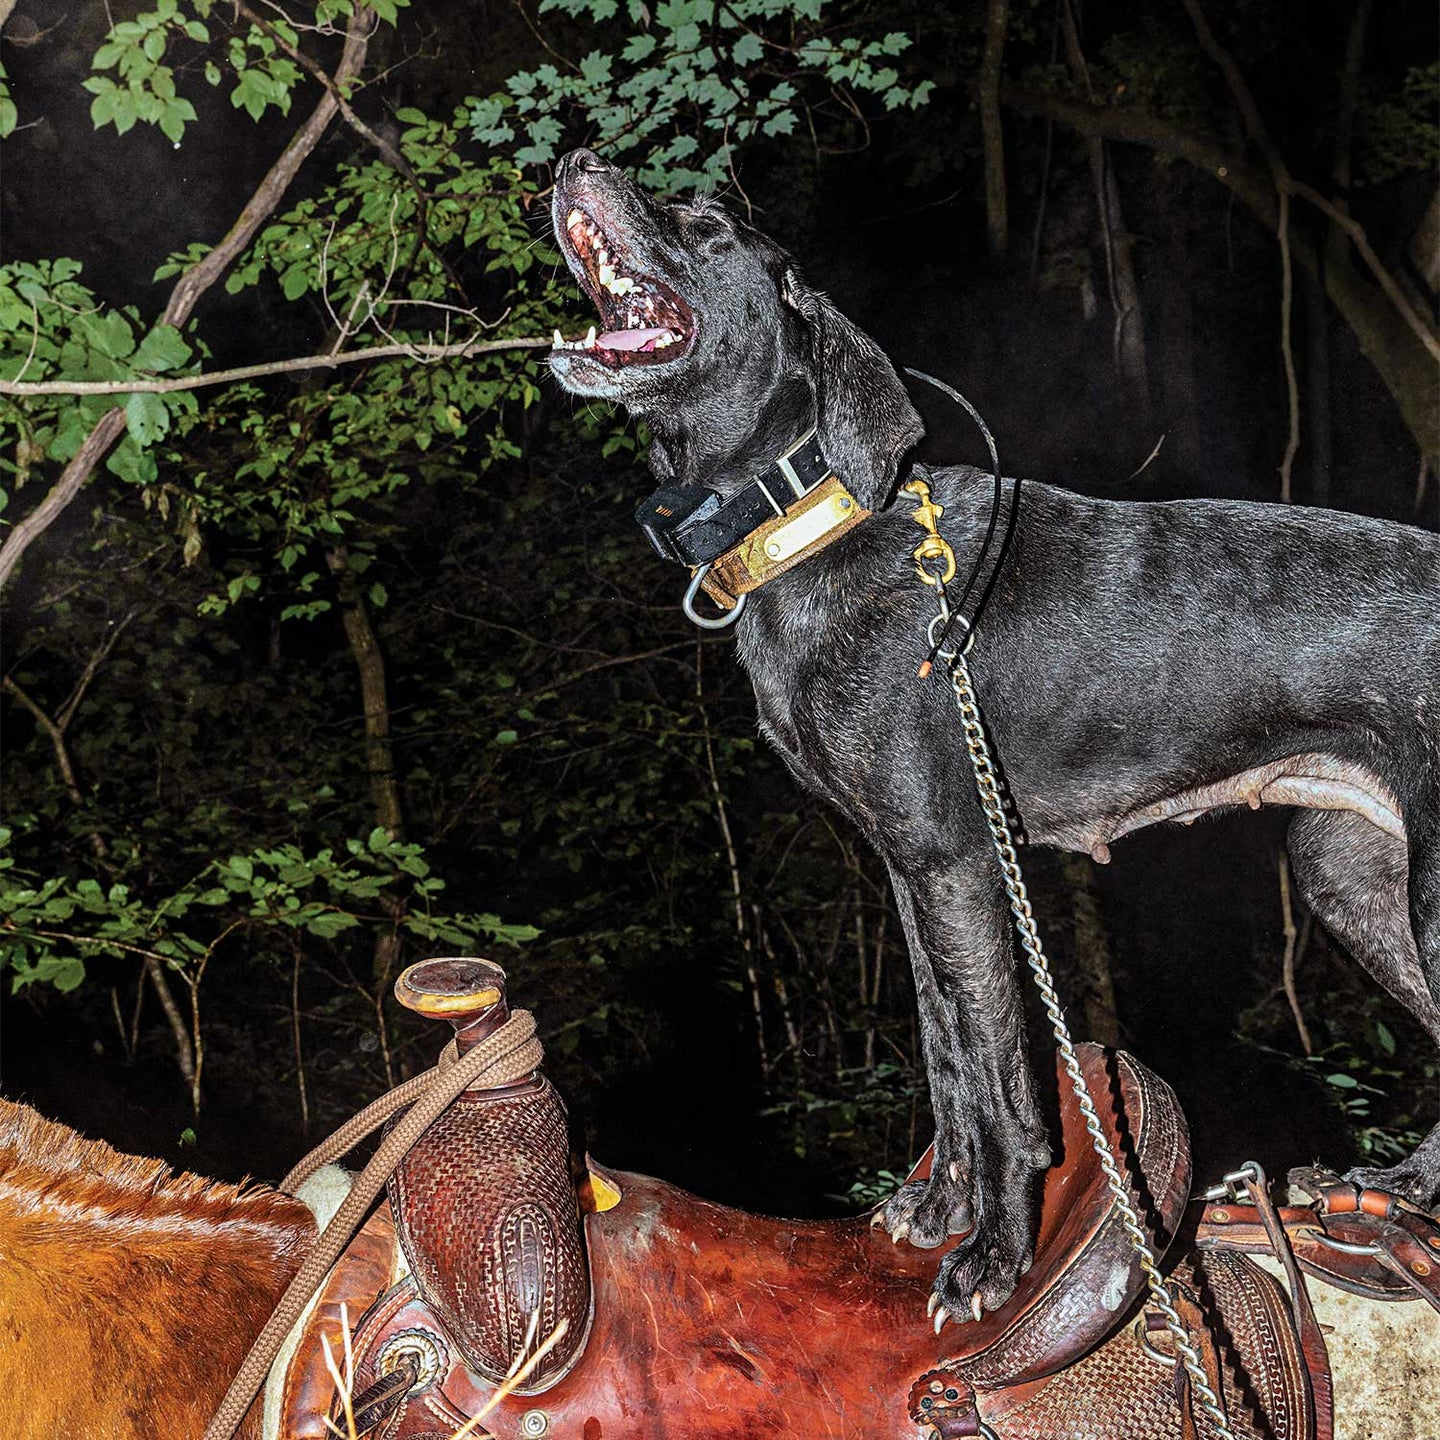 hunting dog standing on a horse back and saddle.